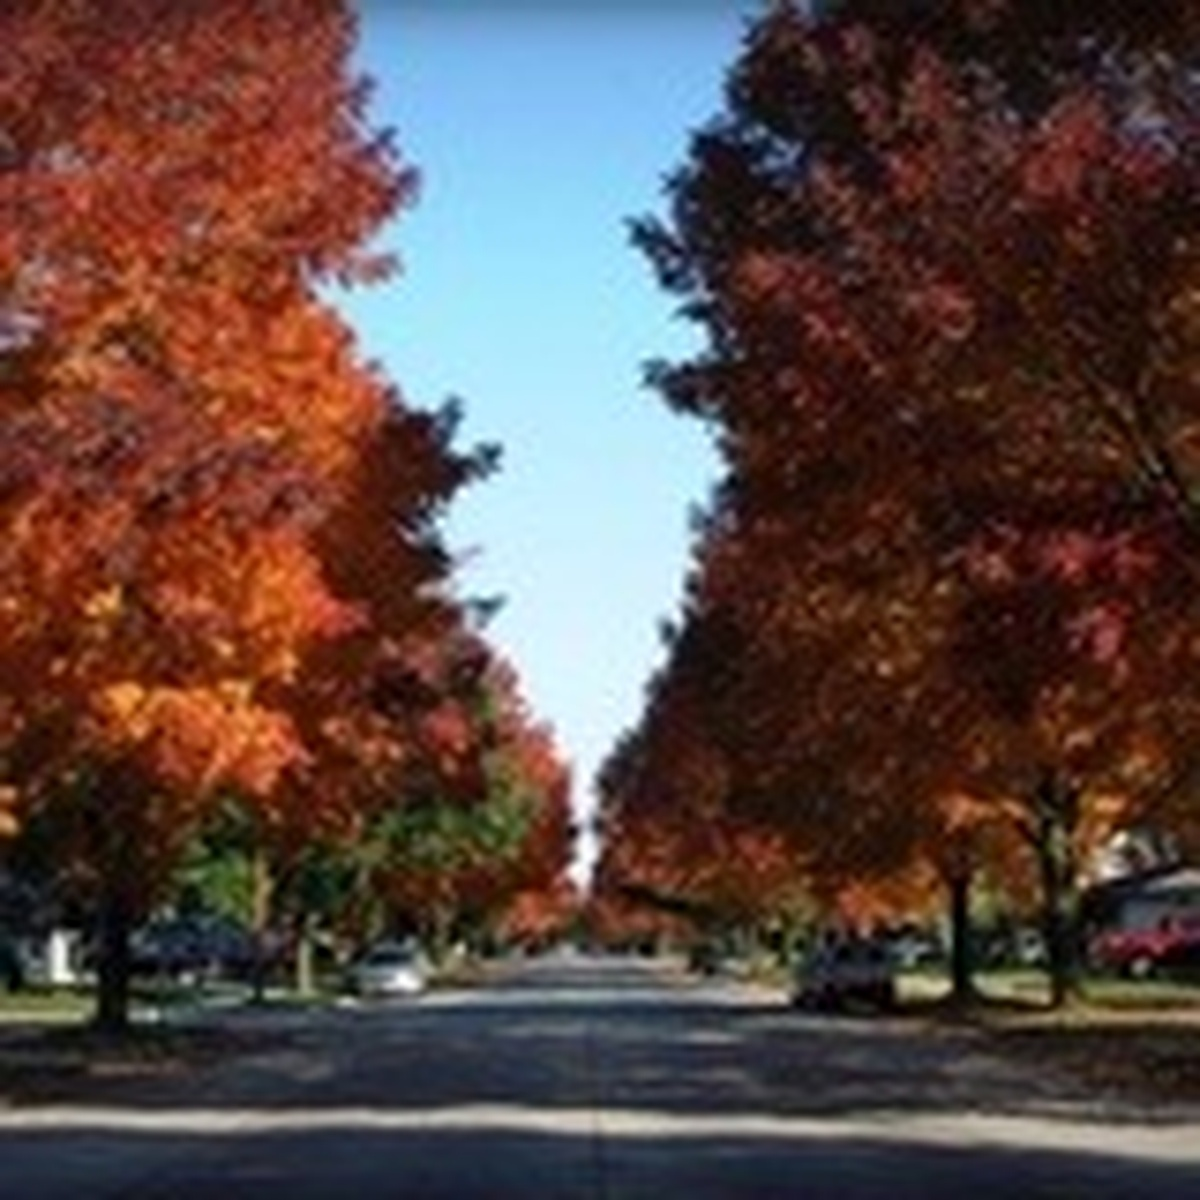 10-12-2018 - Sheboygan Area Weekend Whassup | 104 5 and 96 1